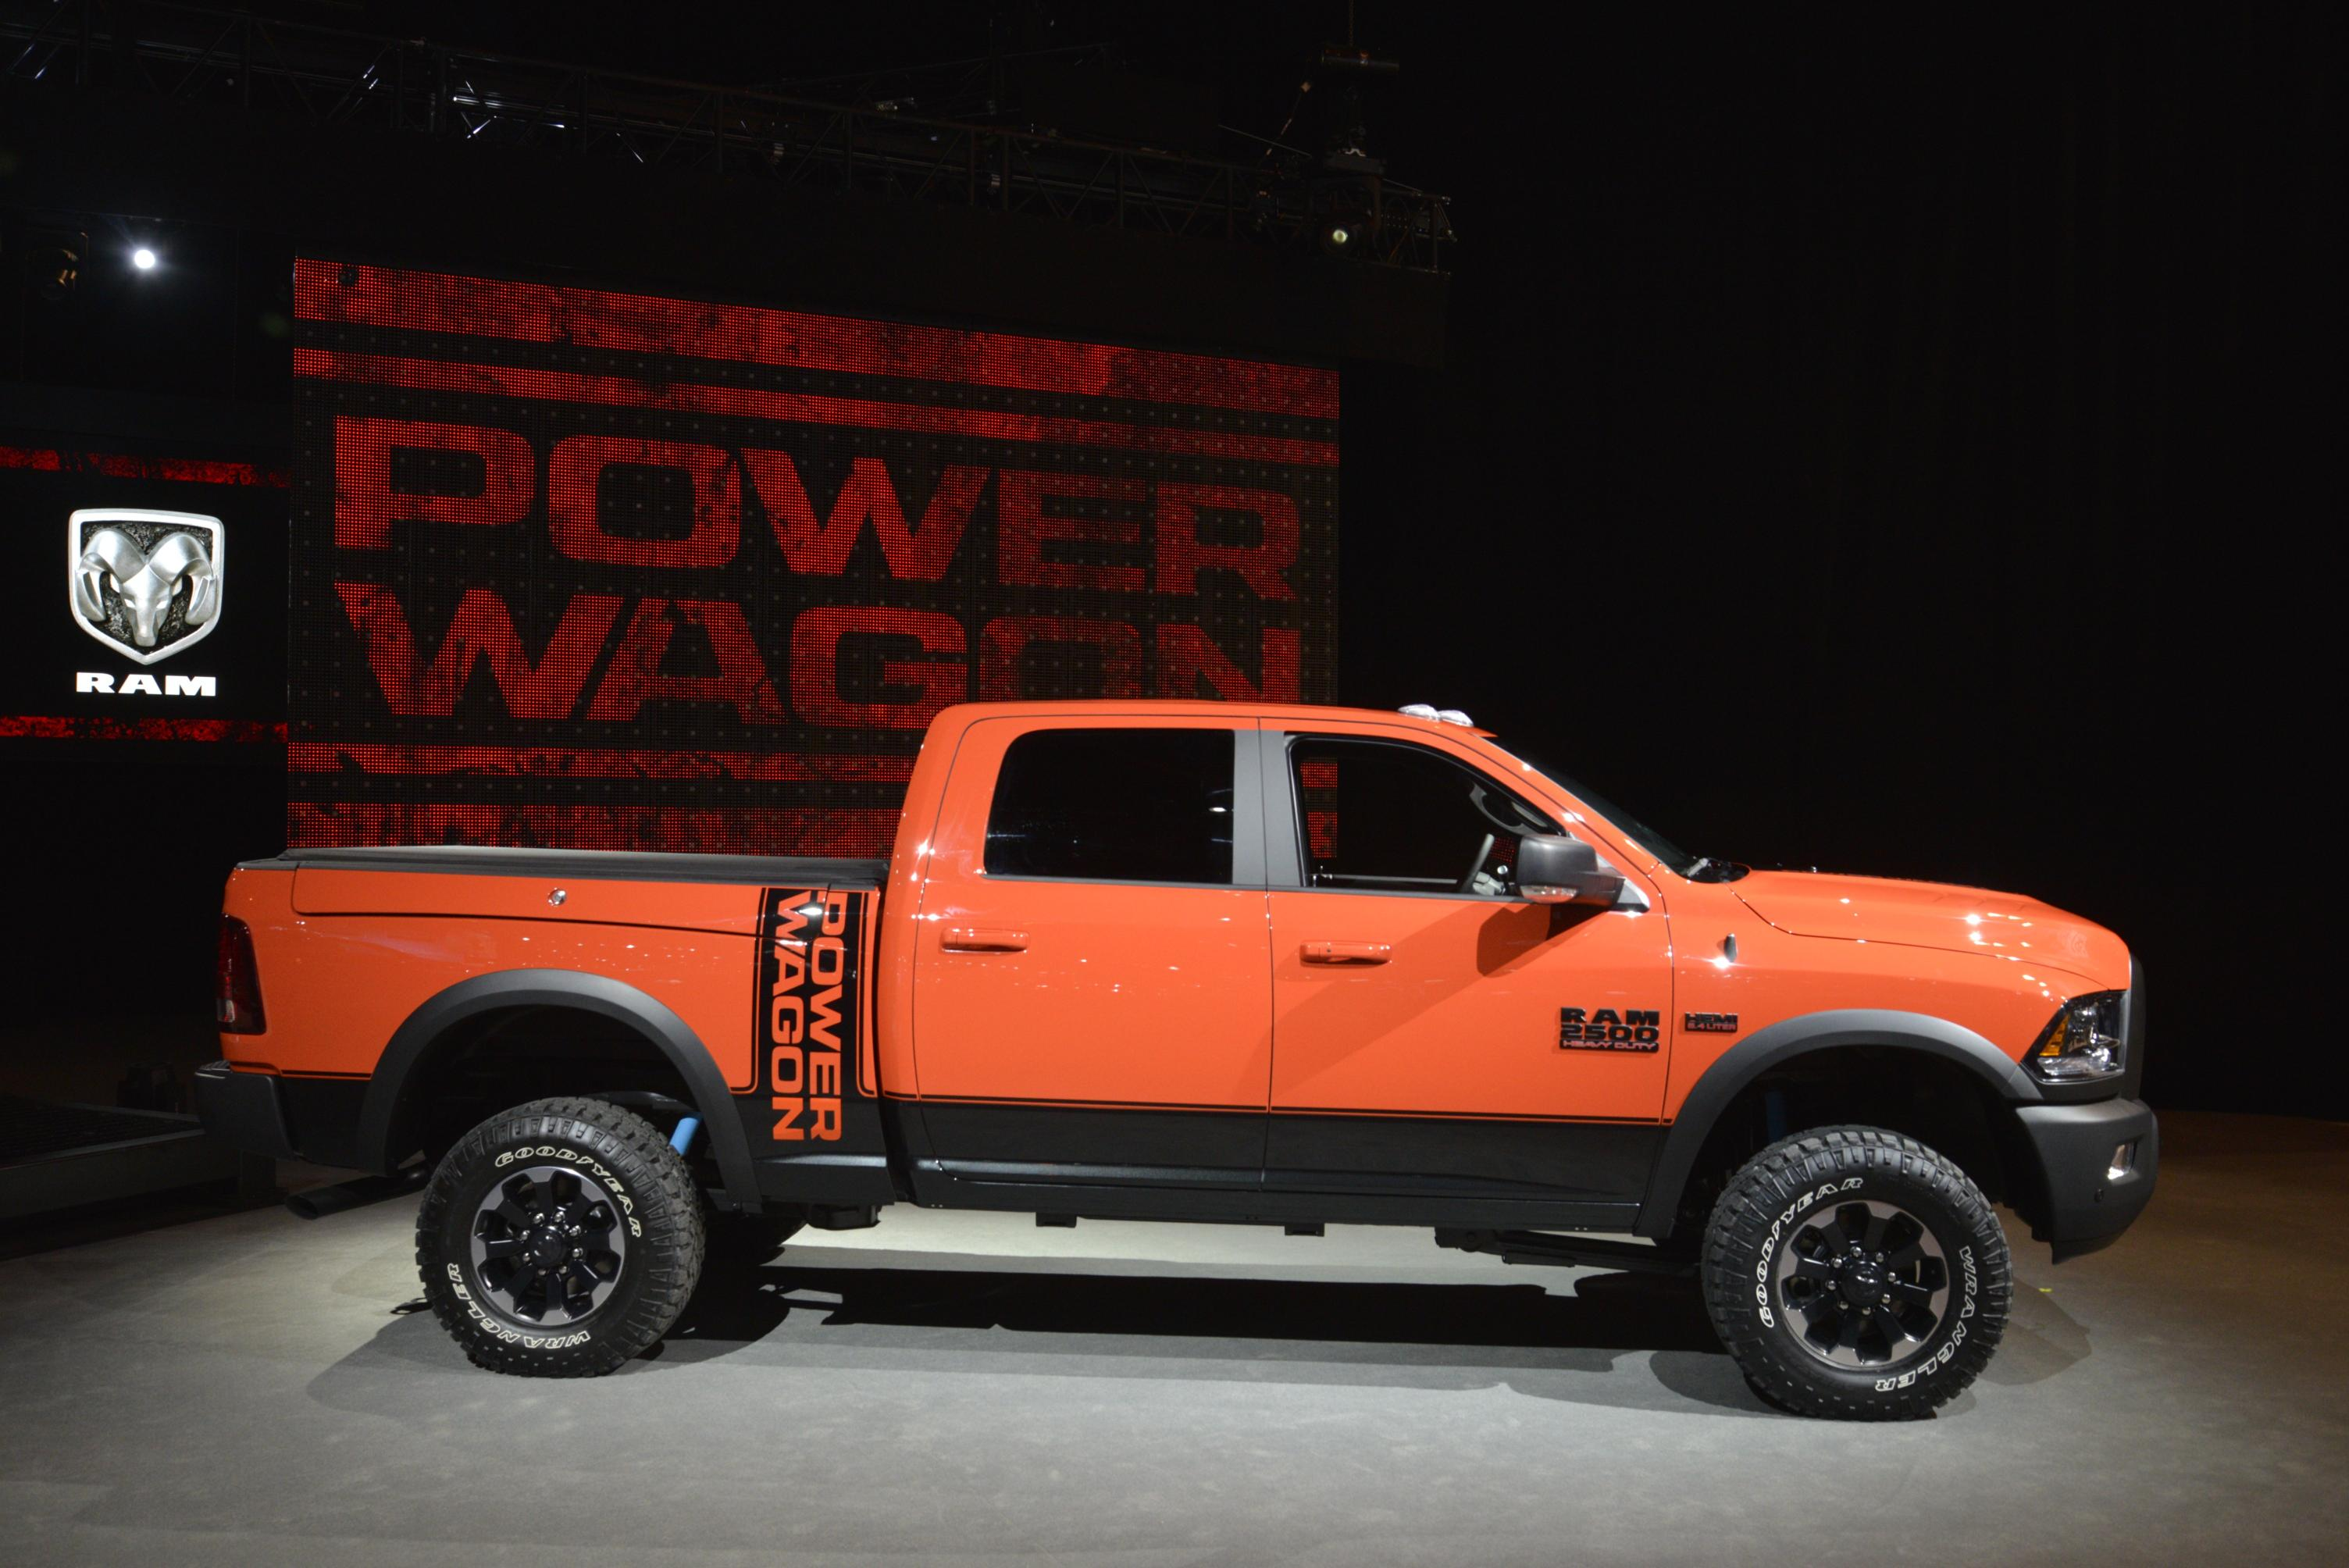 2017 ram 2500 power wagon demos its macho suspension articulation in chicago autoevolution. Black Bedroom Furniture Sets. Home Design Ideas